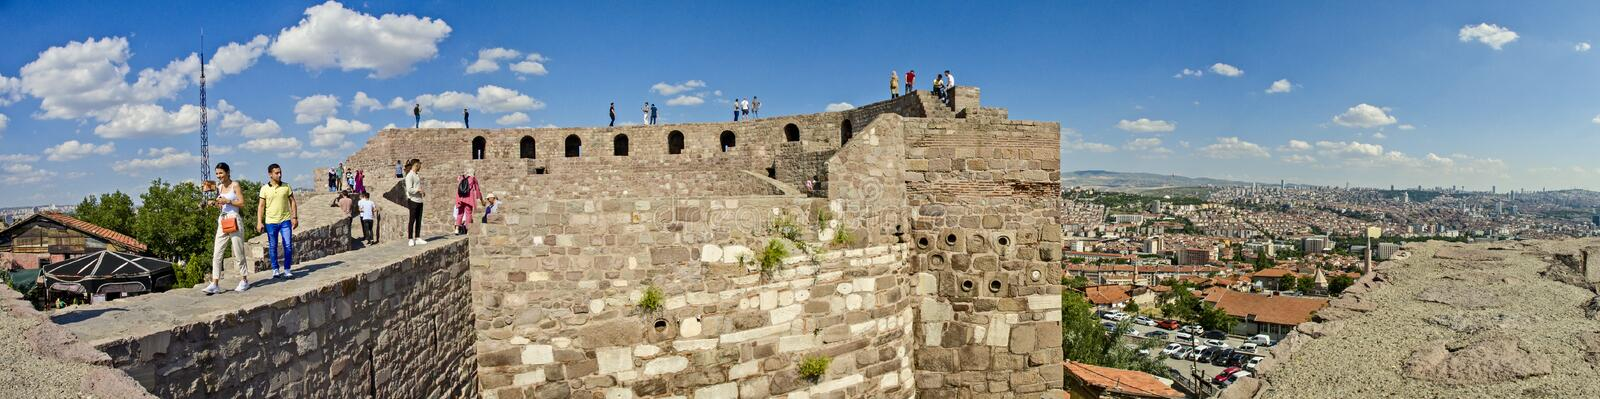 Panoramic view of Ankara Castle Kalesi. It is a fortification from the late antique / early medieval era in Ankara, Turkey stock images